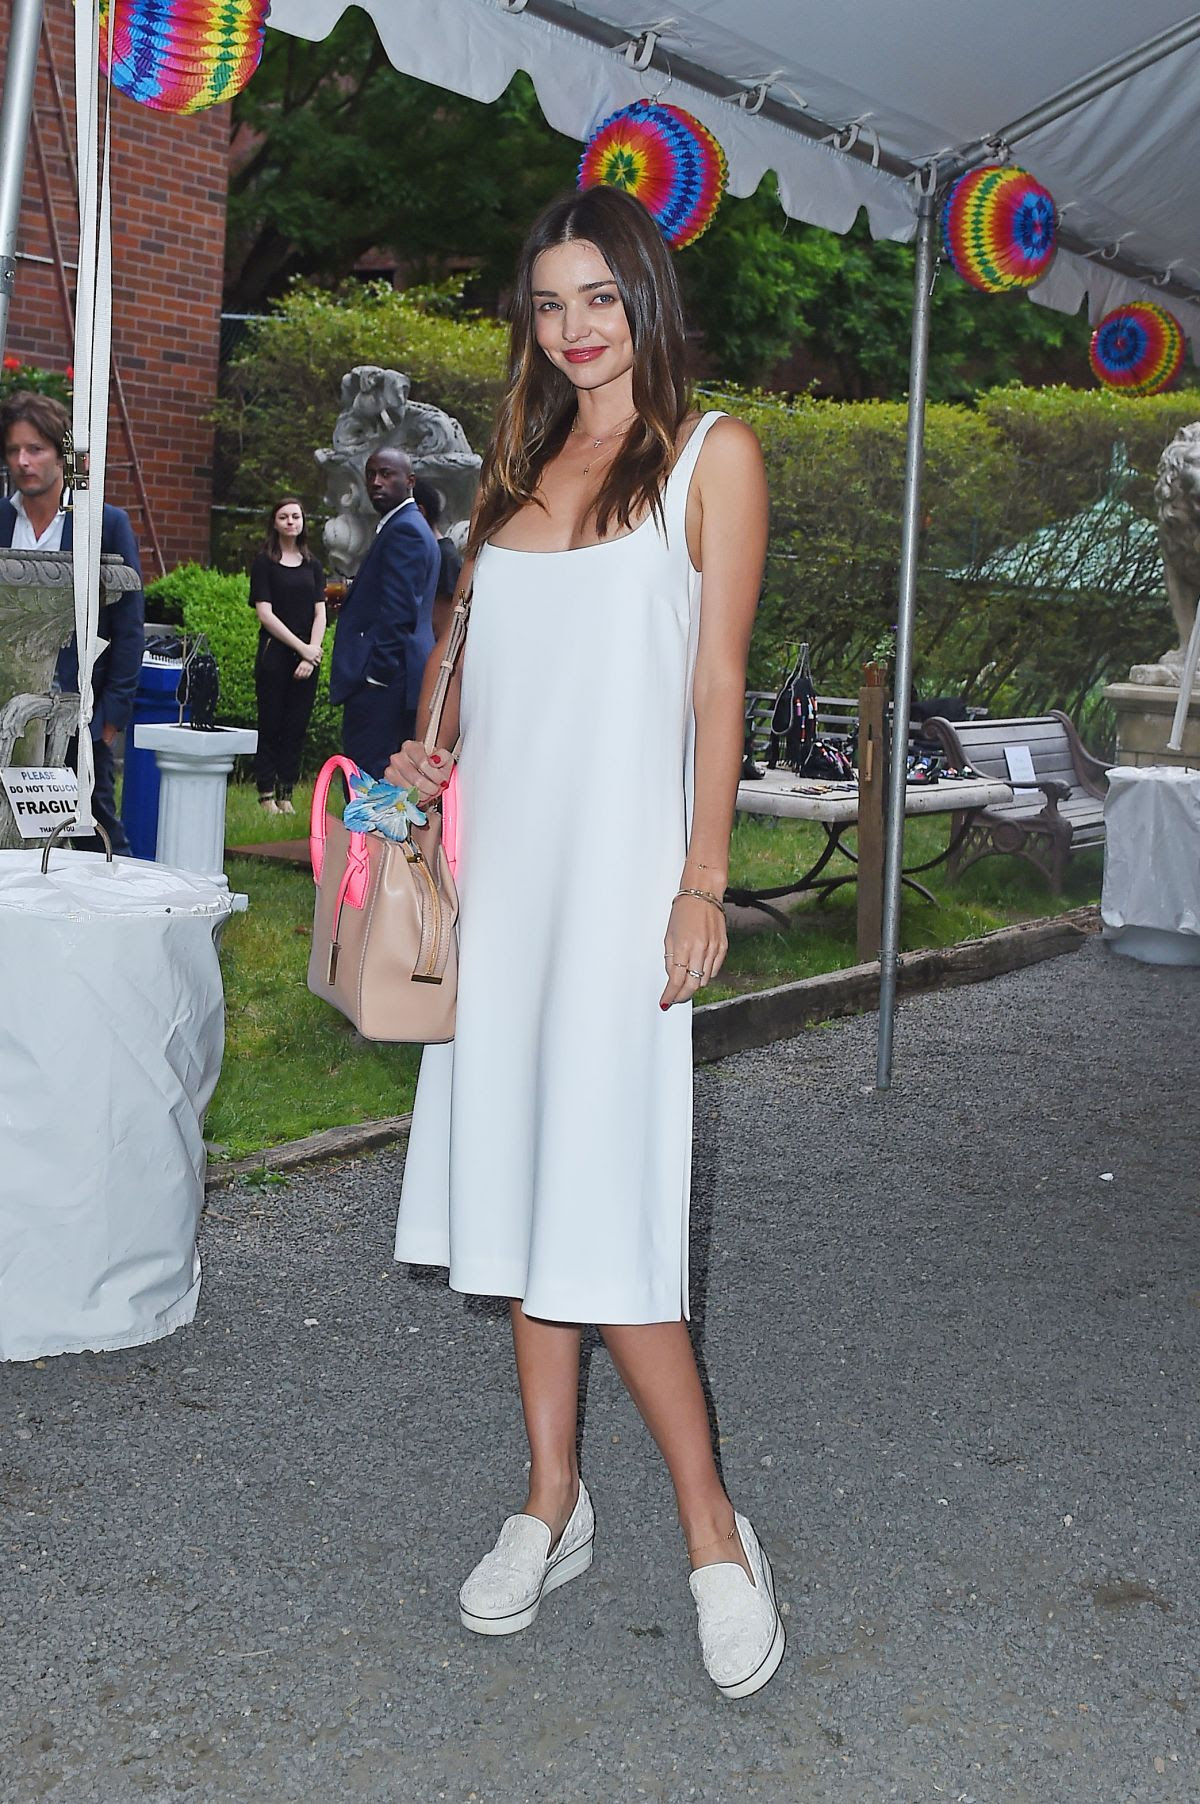 MIRANDA KERR at Stella Mccartney Spring 2016 Presentation in New York